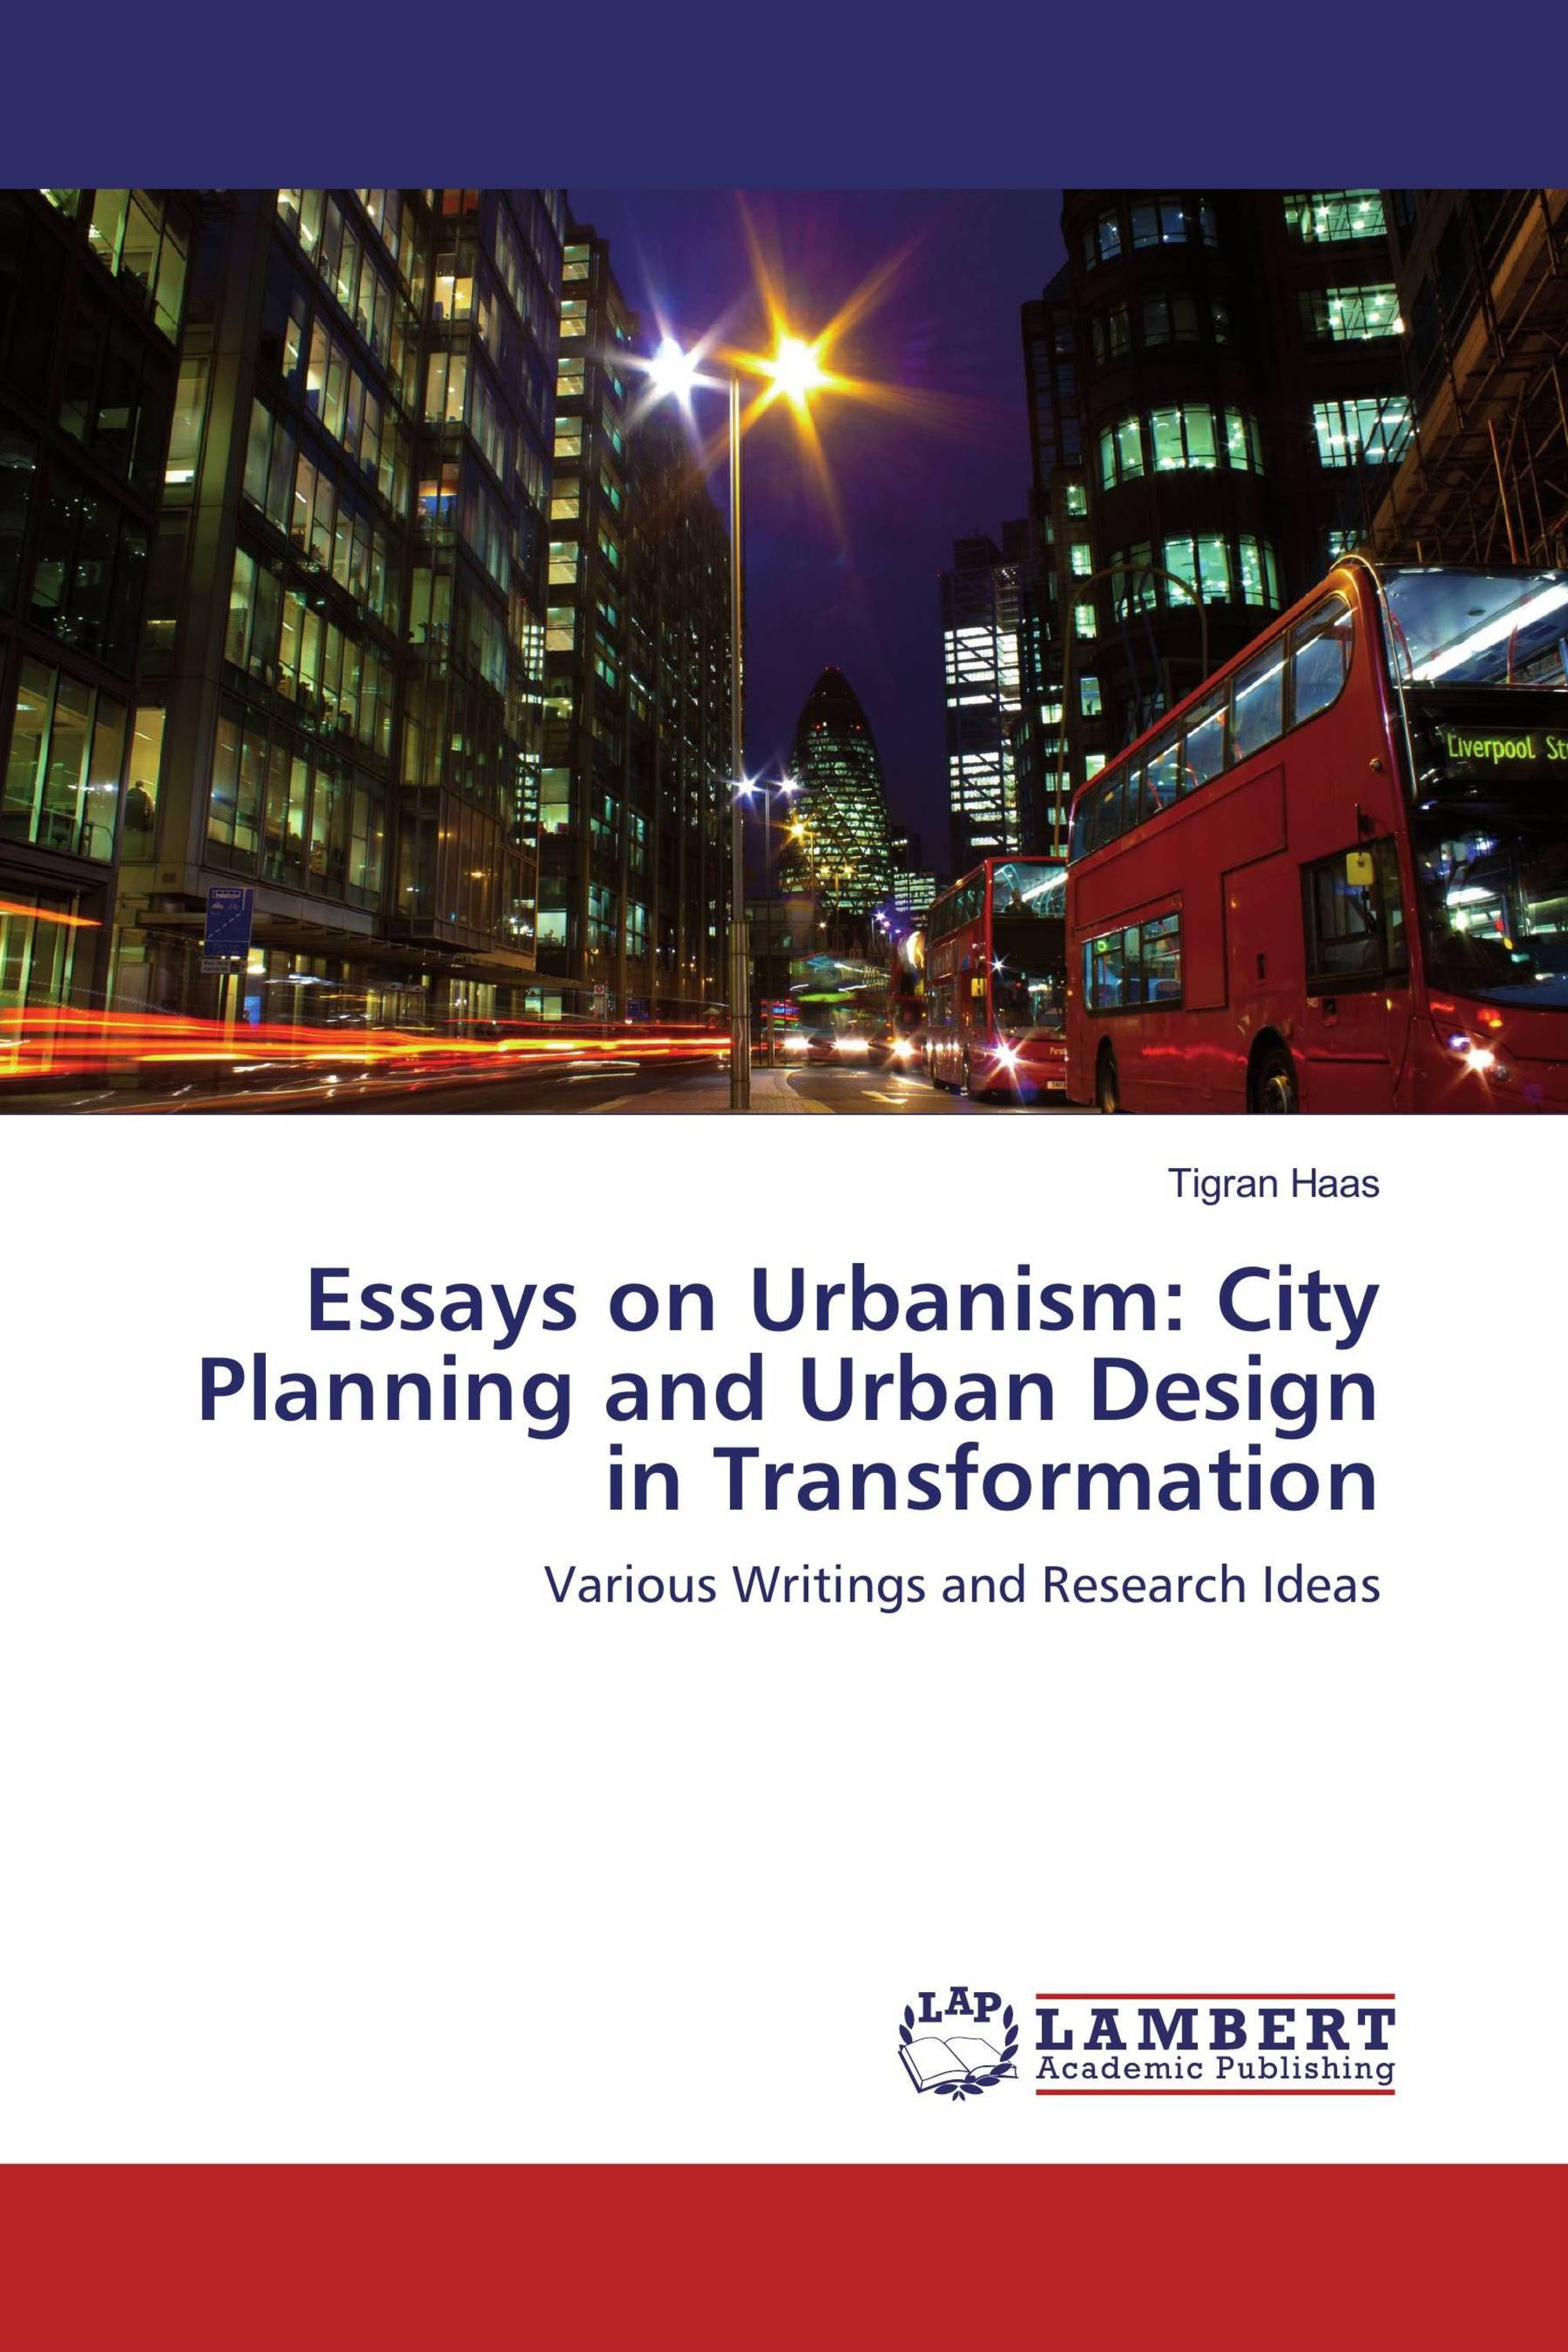 essays on urbanism city planning and urban design in essays on urbanism city planning and urban design in transformation